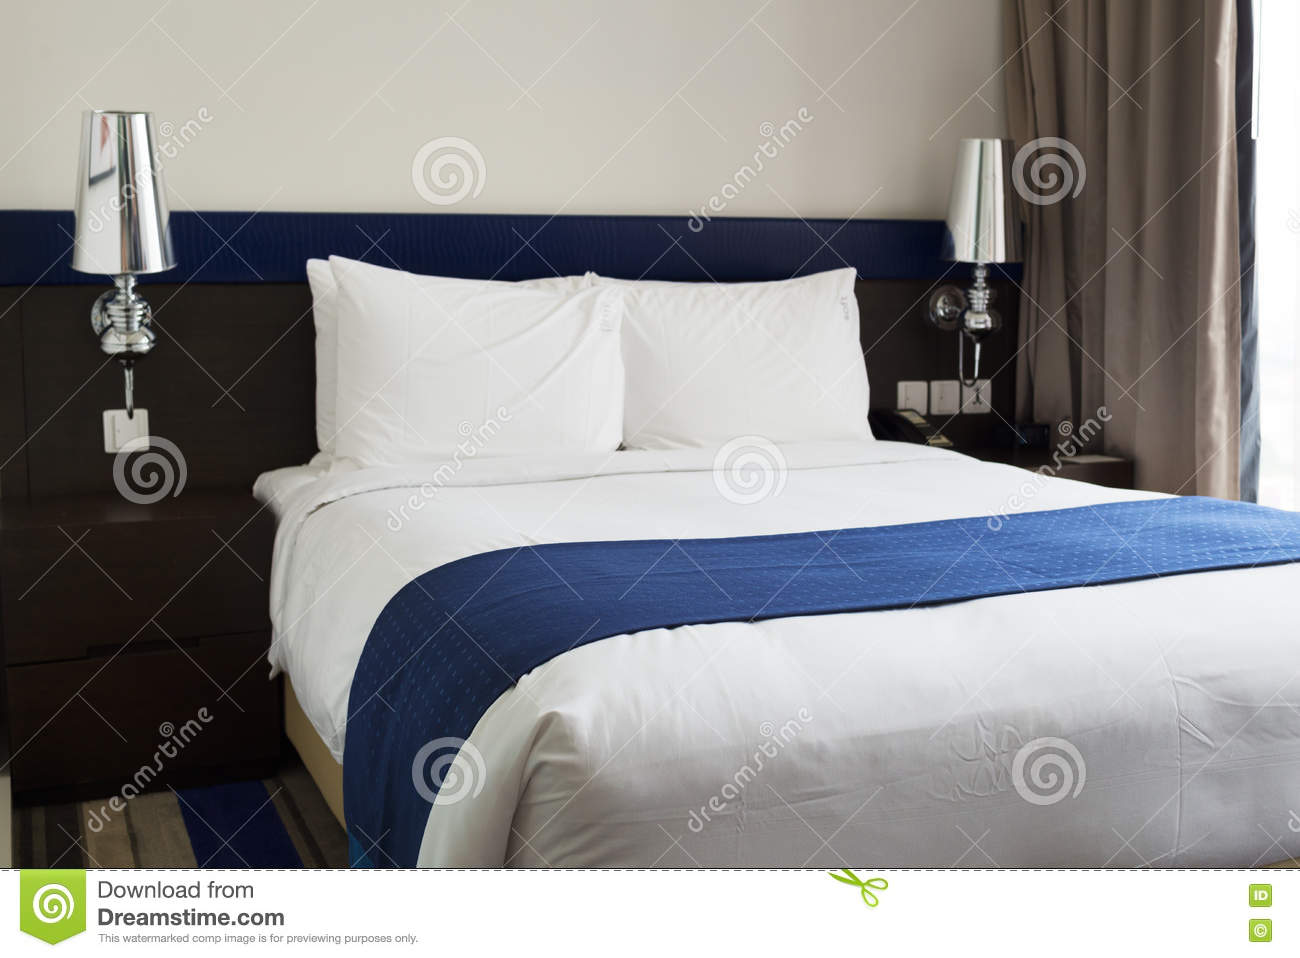 King size bed stock image image of size guest luxury for Guest room bed size